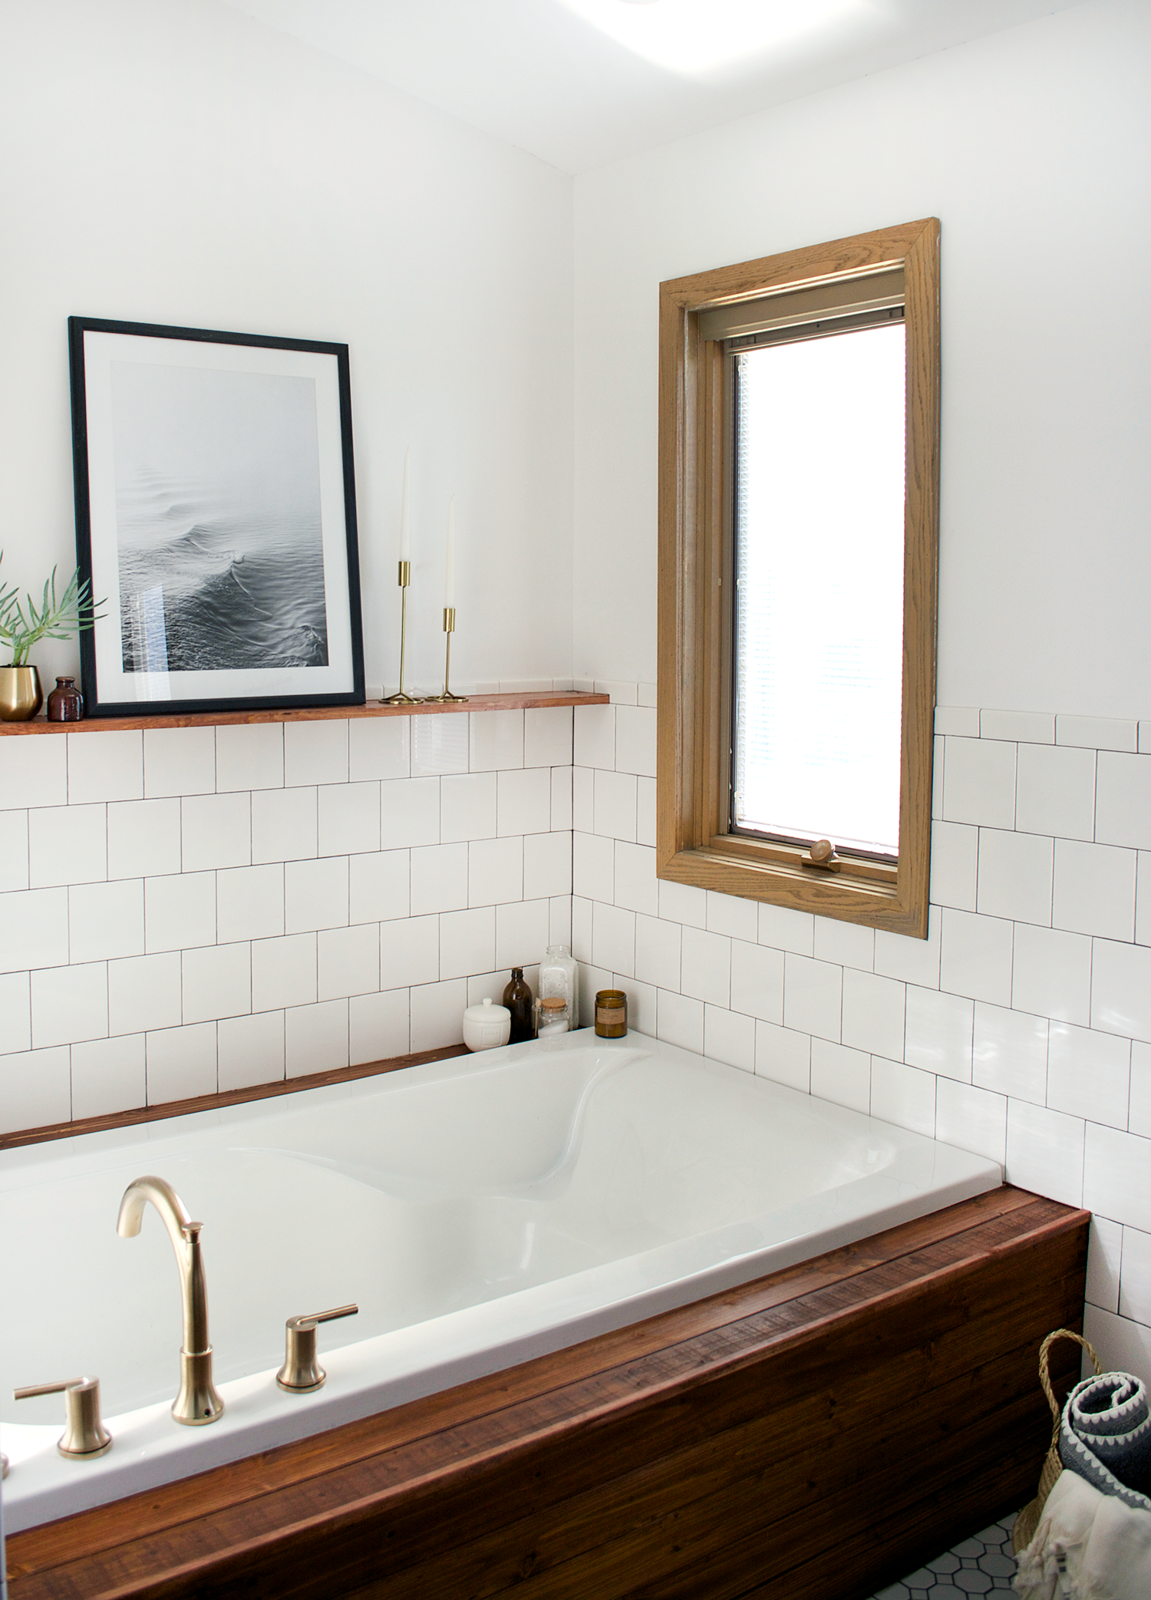 Bath, Subway Tile, Drop In, and Ceramic Tile For a while, Goldman could not decide between free standing bathtub and a built-it, but was sold on a built-in when she saw inspiration photos of wood panelled tubs.  Best Bath Drop In Ceramic Tile Photos from Before & After: An Outdated Bathroom Gets a Complete Makeover in Just 6 Weeks